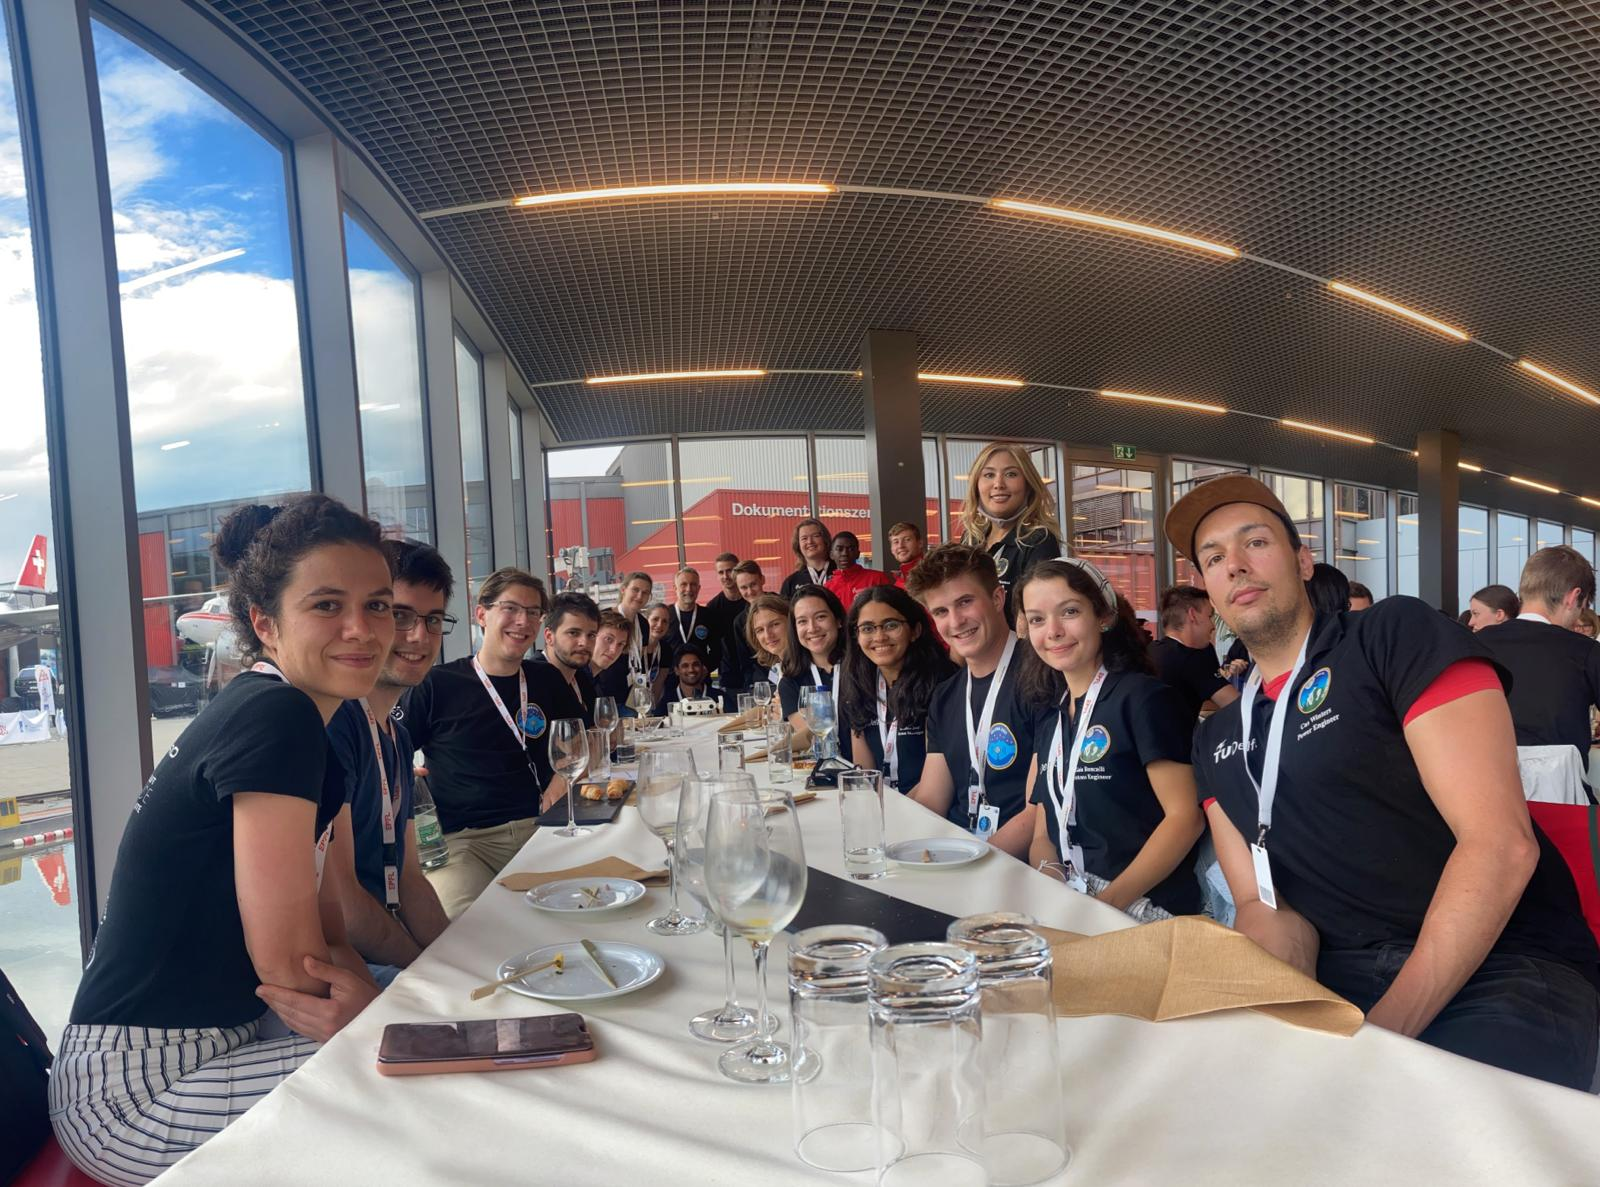 The Lunar Zebro IGLUNA team in Switzerland during the apéro after the opening ceremon